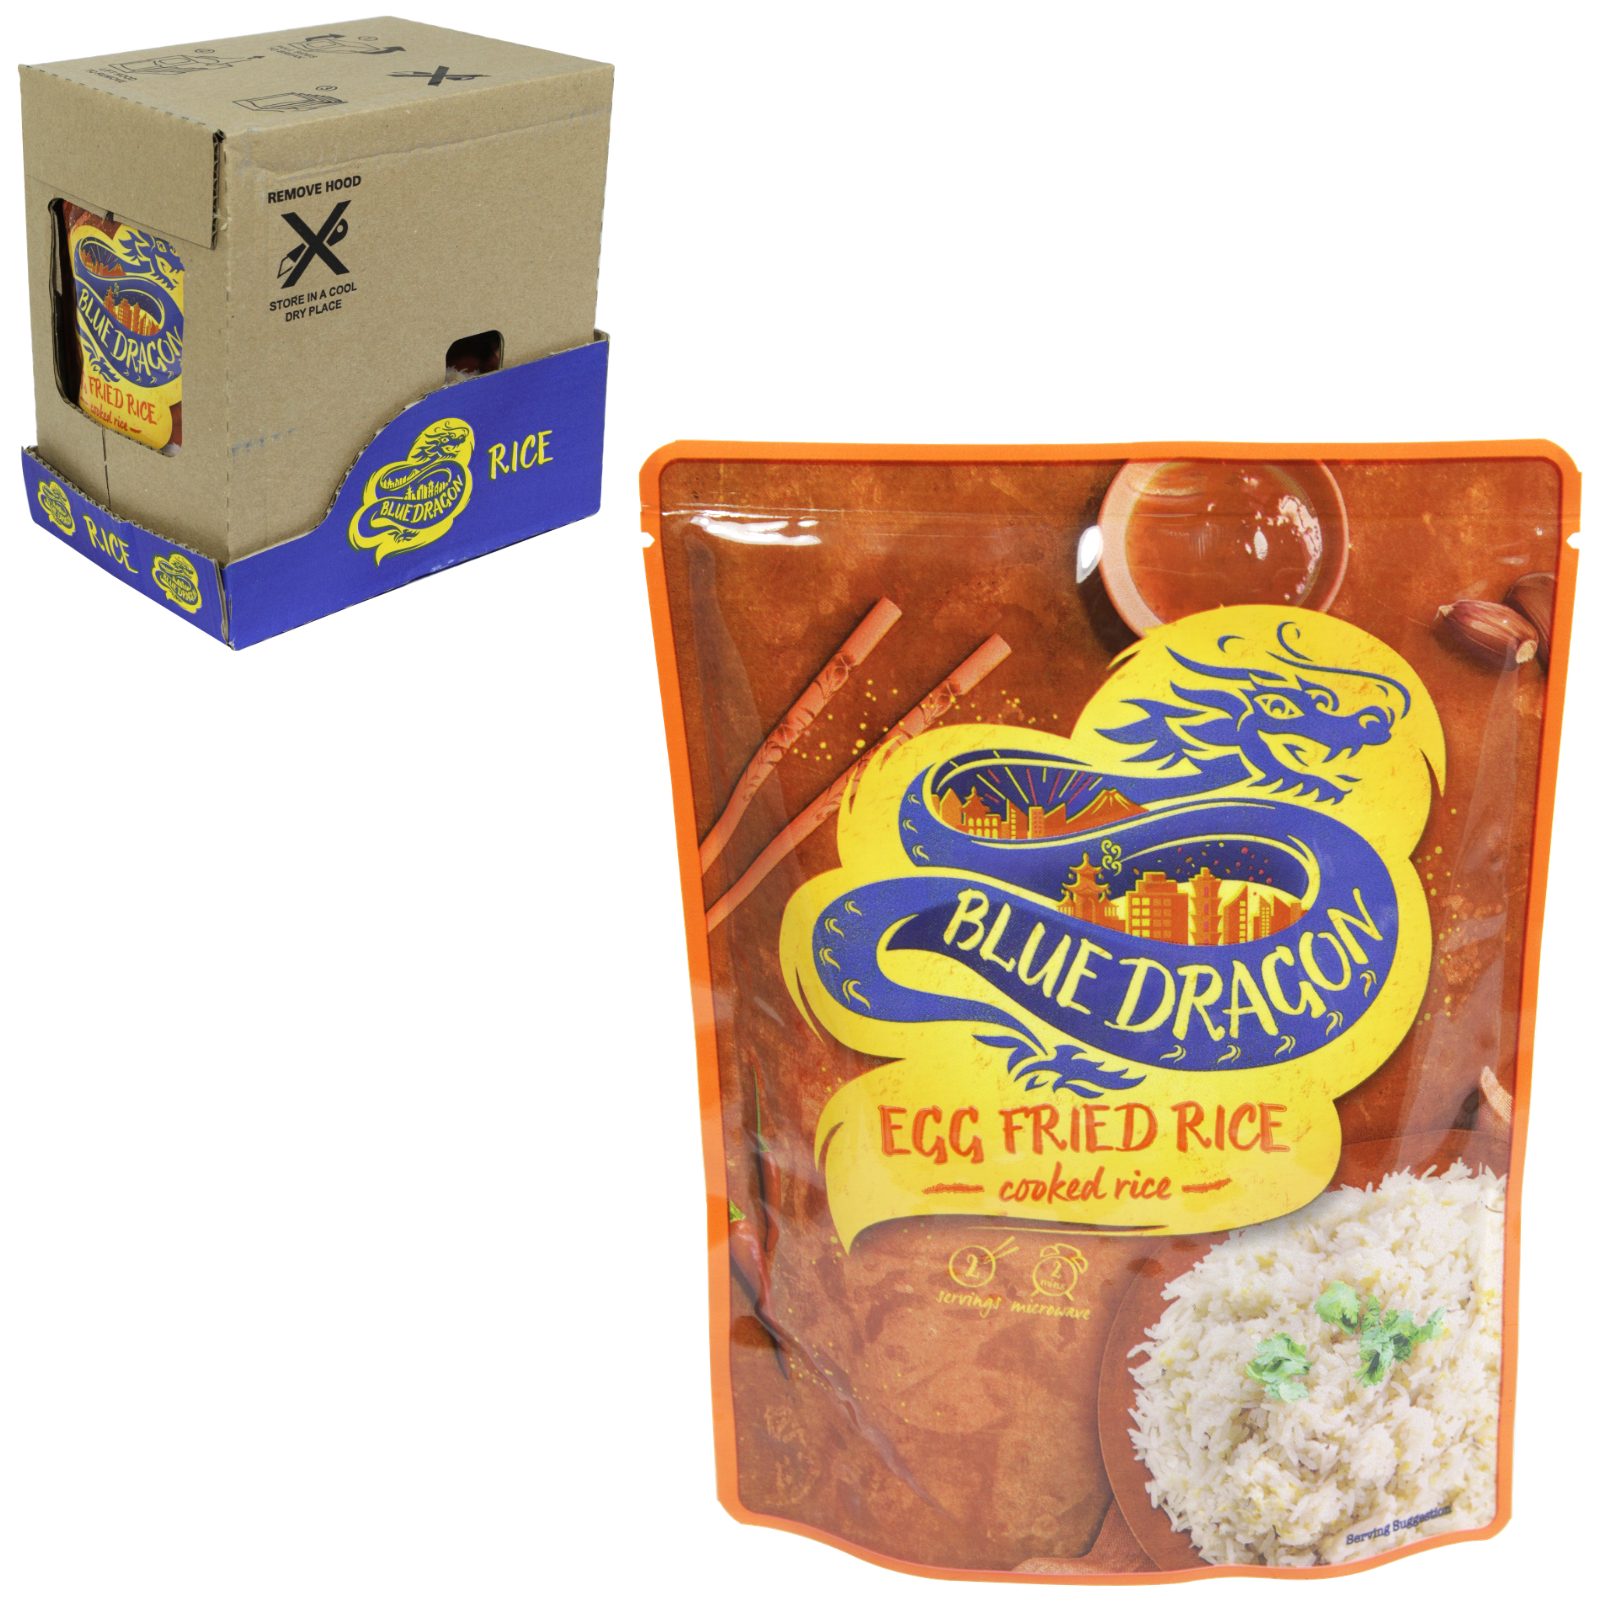 BLUE DRAGON MICROWAVE EGG FRIED RICE X6